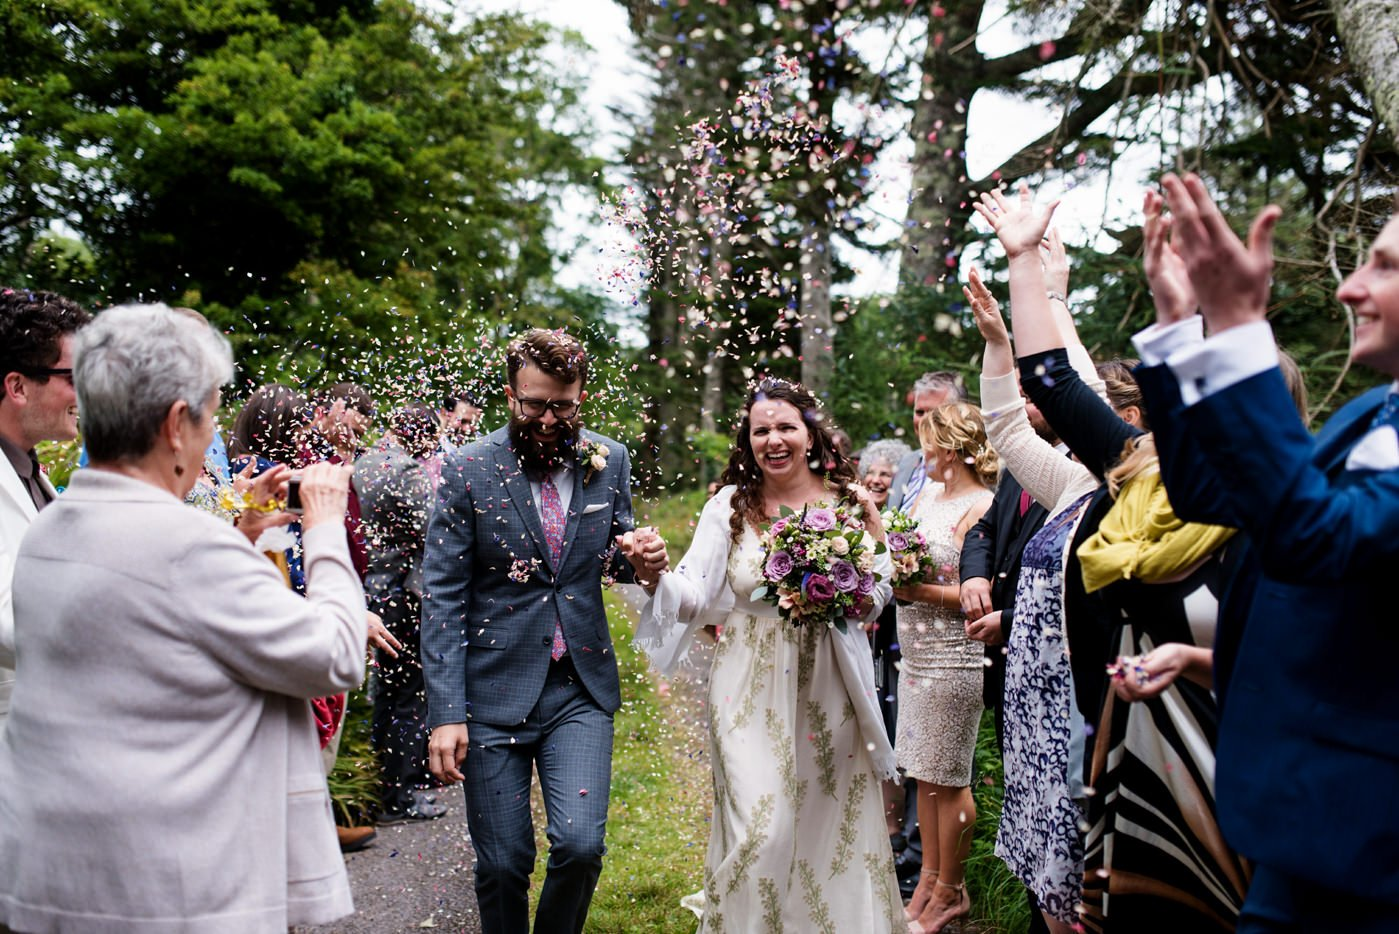 Colourful outdoor wedding ceremony Co Kerry Ireland